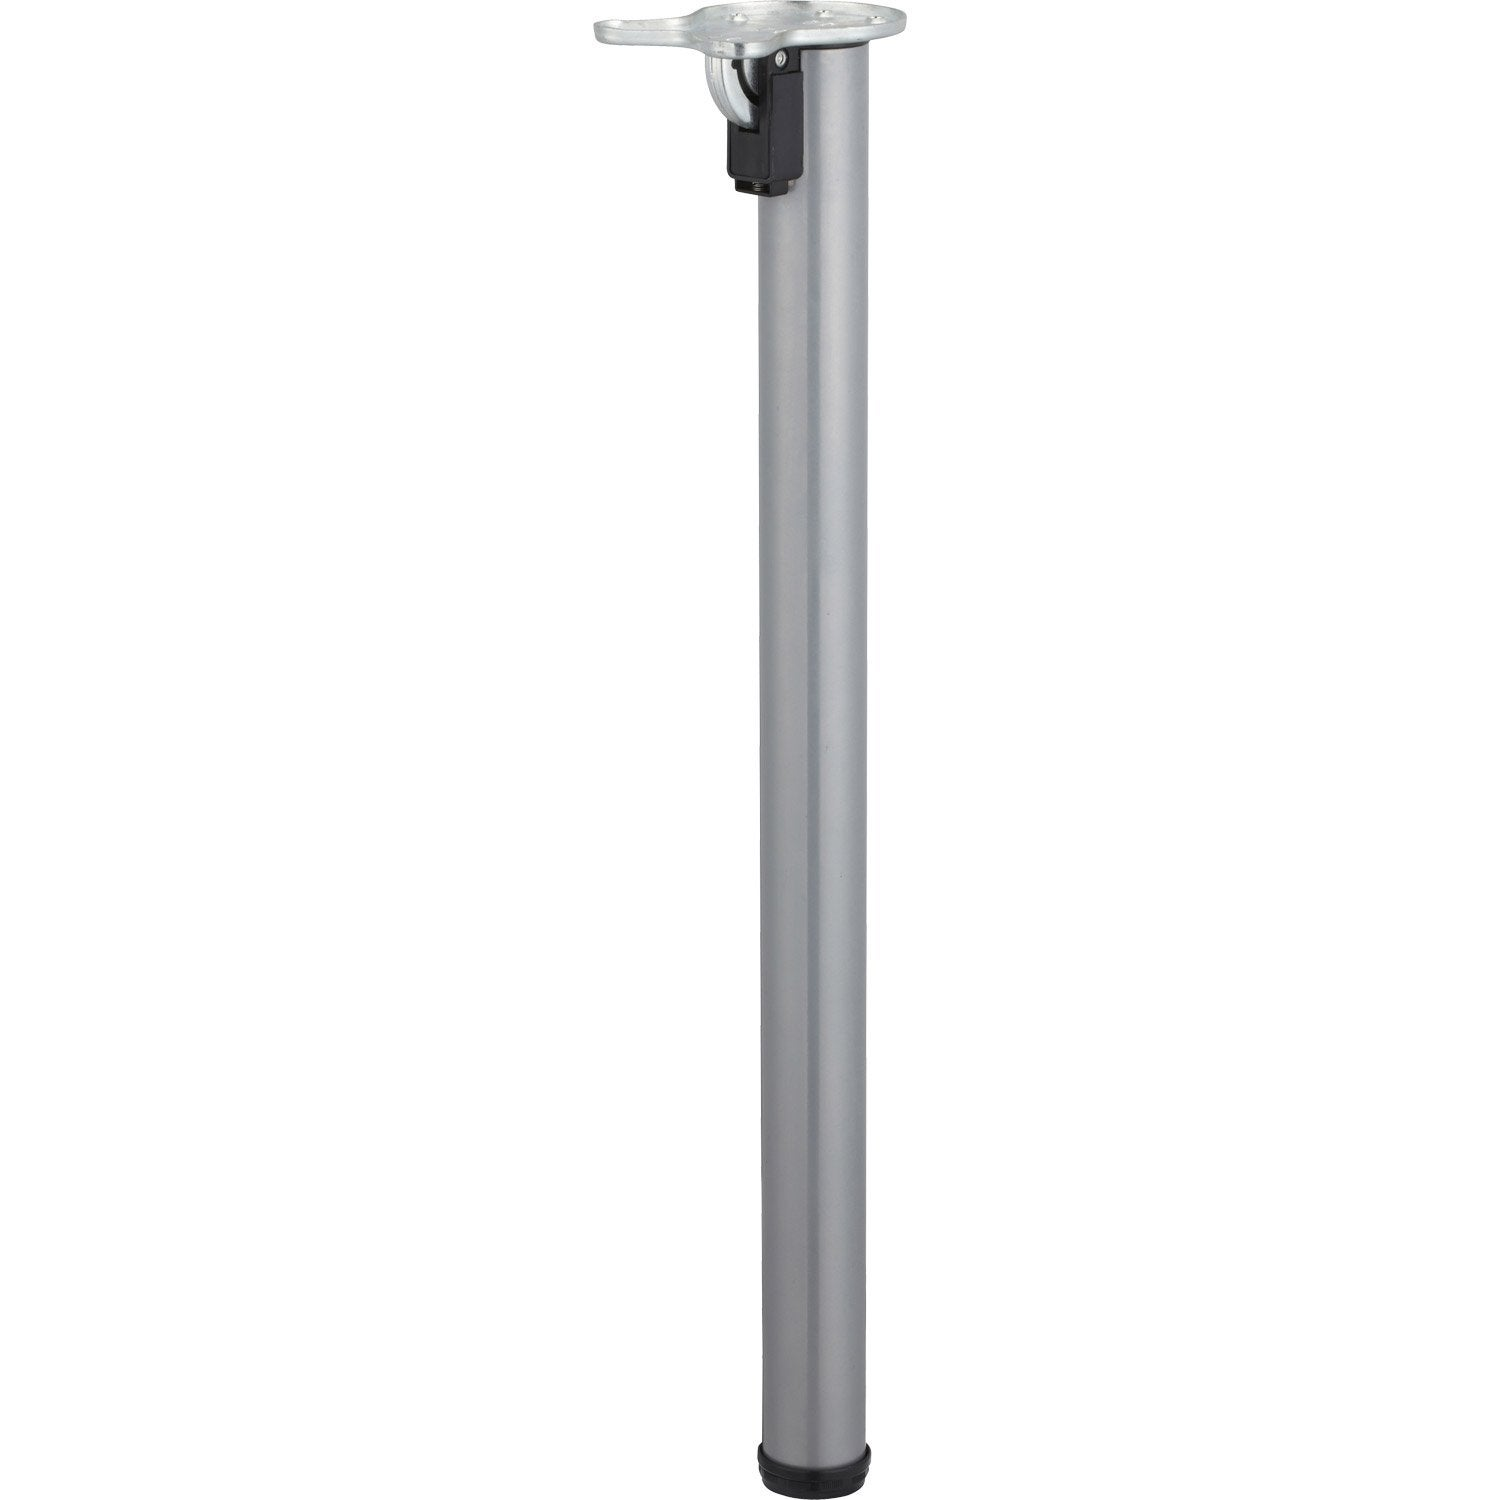 Pied de table cylindrique rabattable en acier epoxy gris 71cmx50mm leroy merlin - Pied de table leroy merlin ...